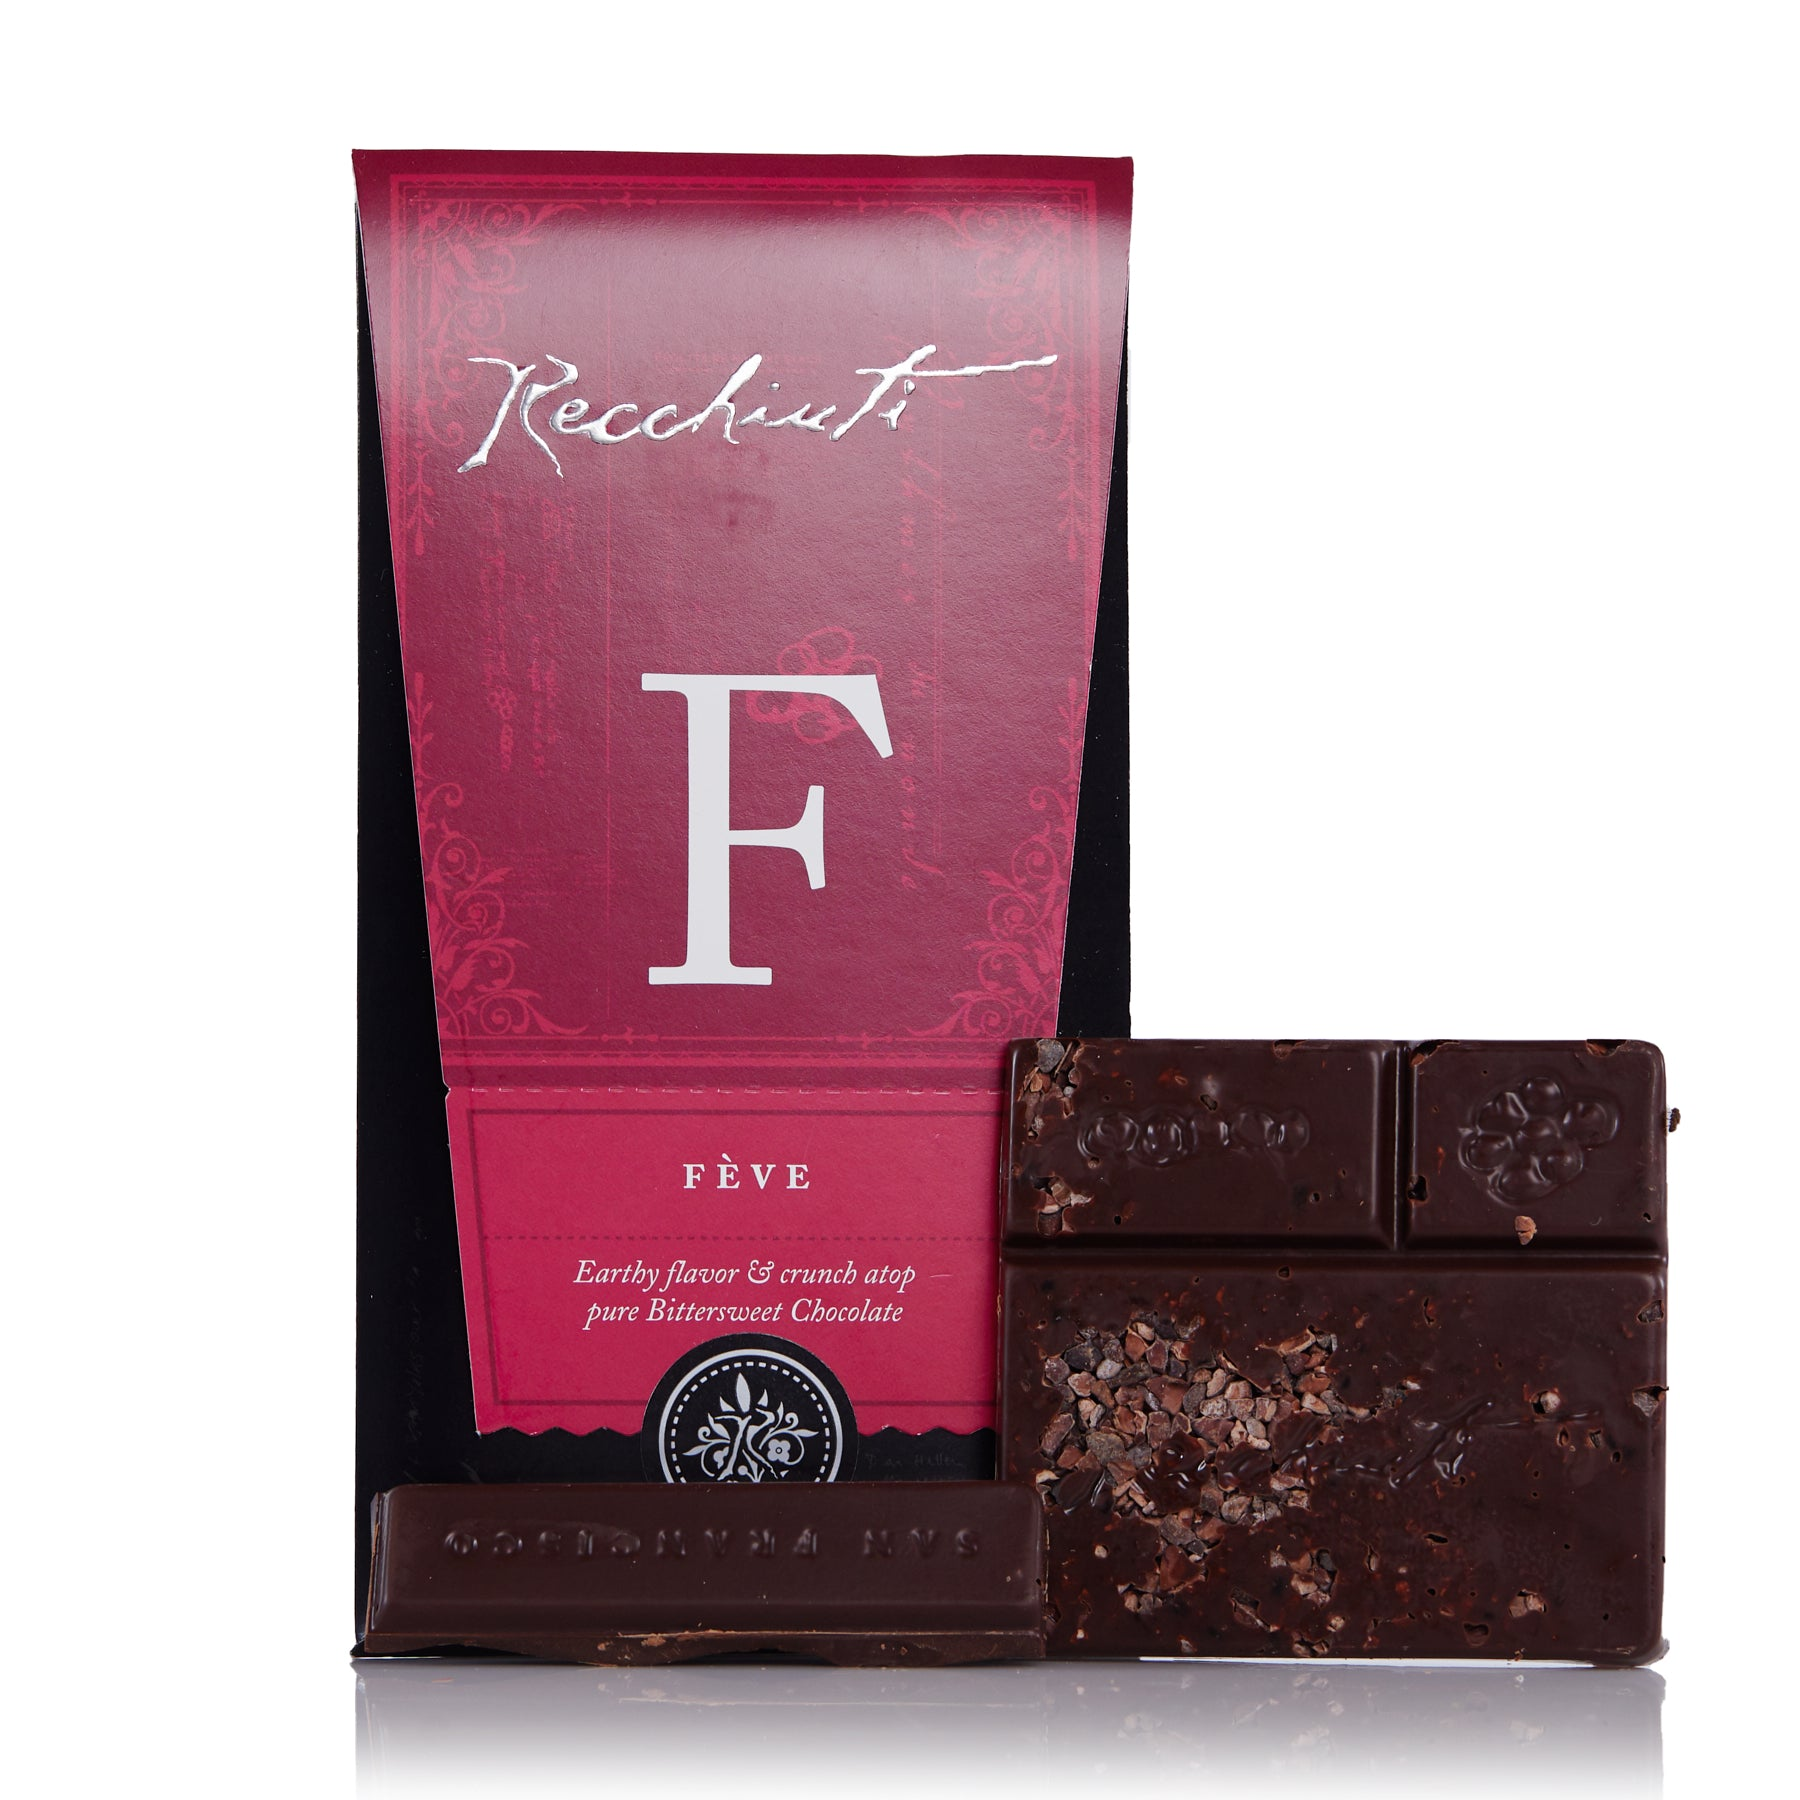 Recchiuti, Feve Dark Chocolate Bar